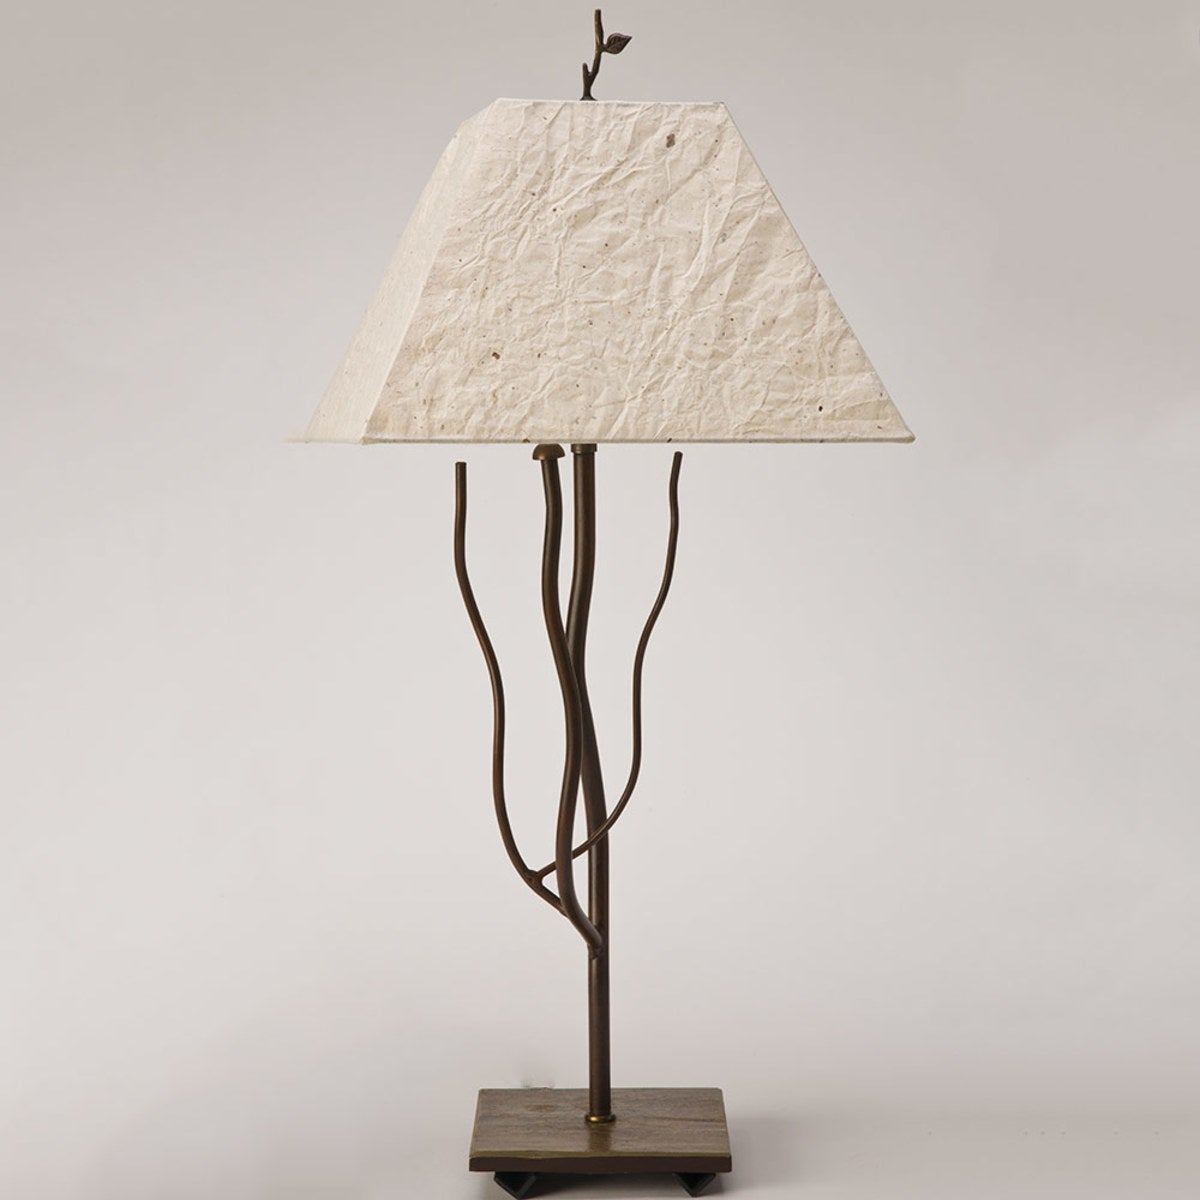 Handmade Iron And Slate Branch Lamp - Natural